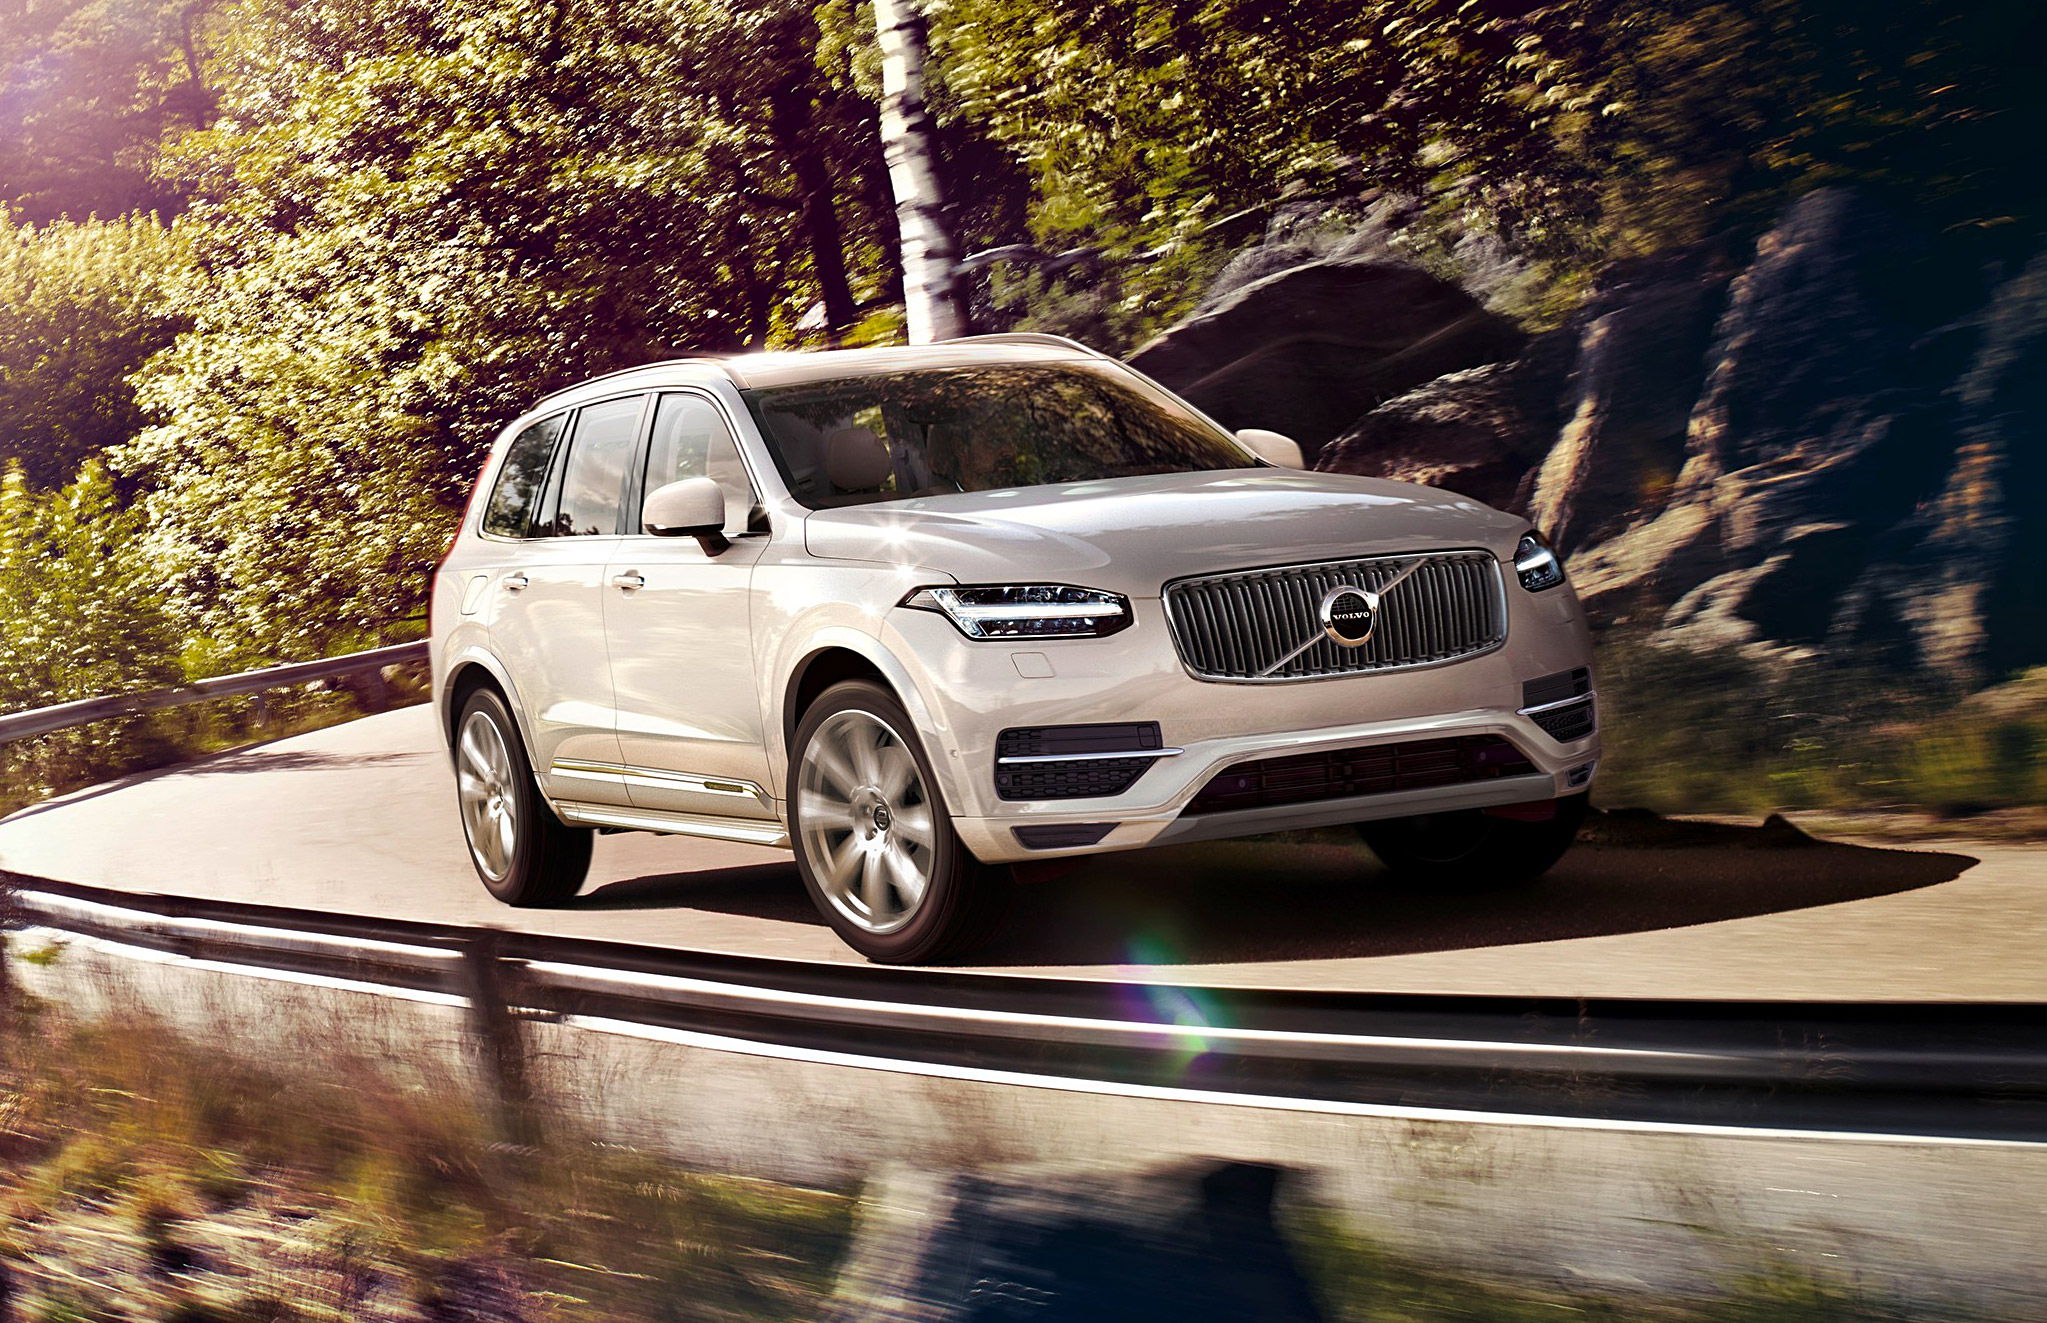 Road Test On Volvo's Award-Winning XC90 T8 Plug-in Hybrid